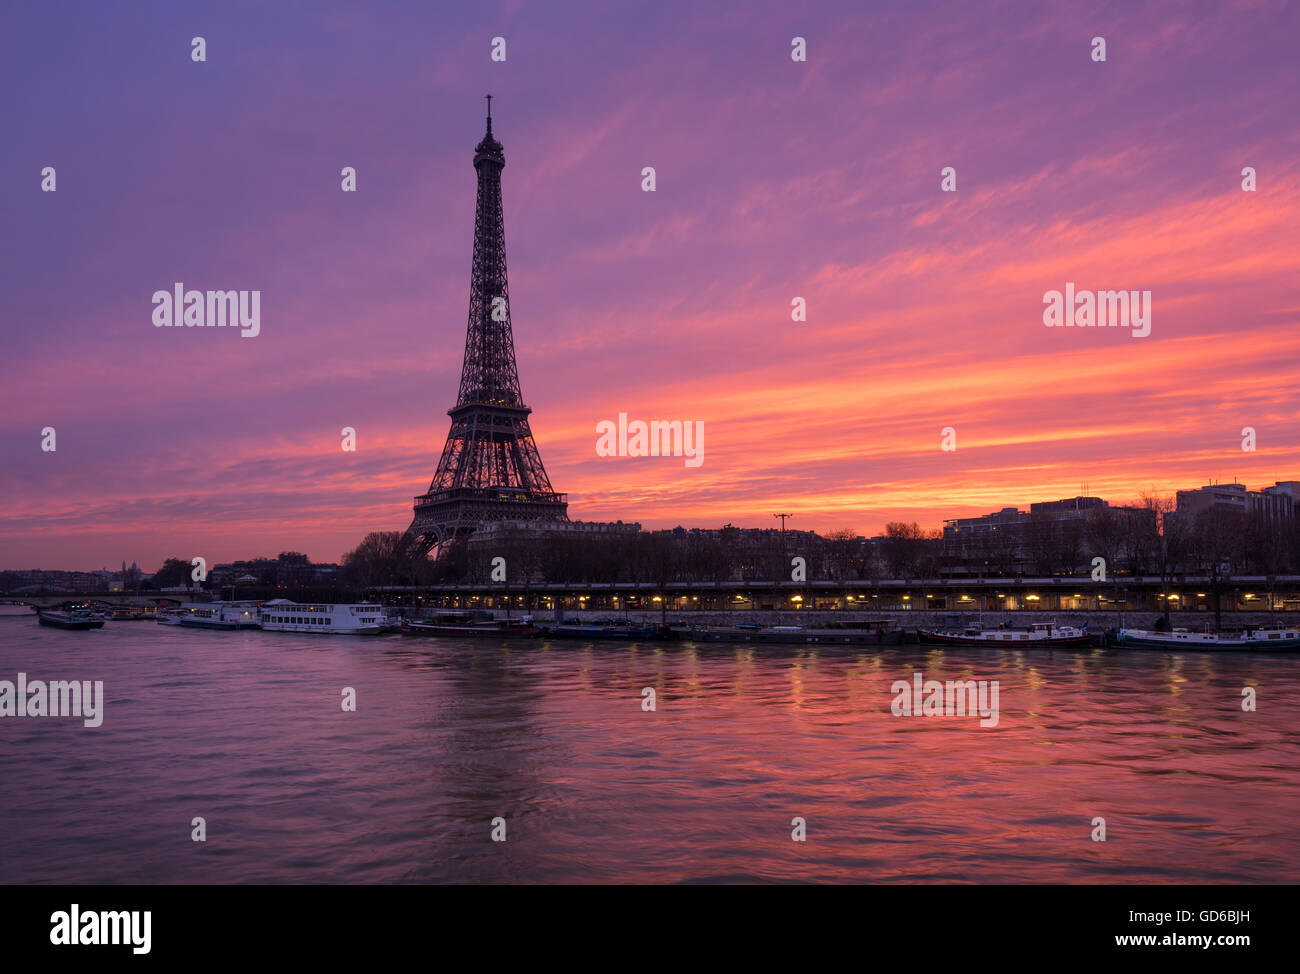 Fiery sunrise on the Eiffel Tower and Seine River with Port de Suffren, Paris (7th and 15th arrondissements) - Stock Image